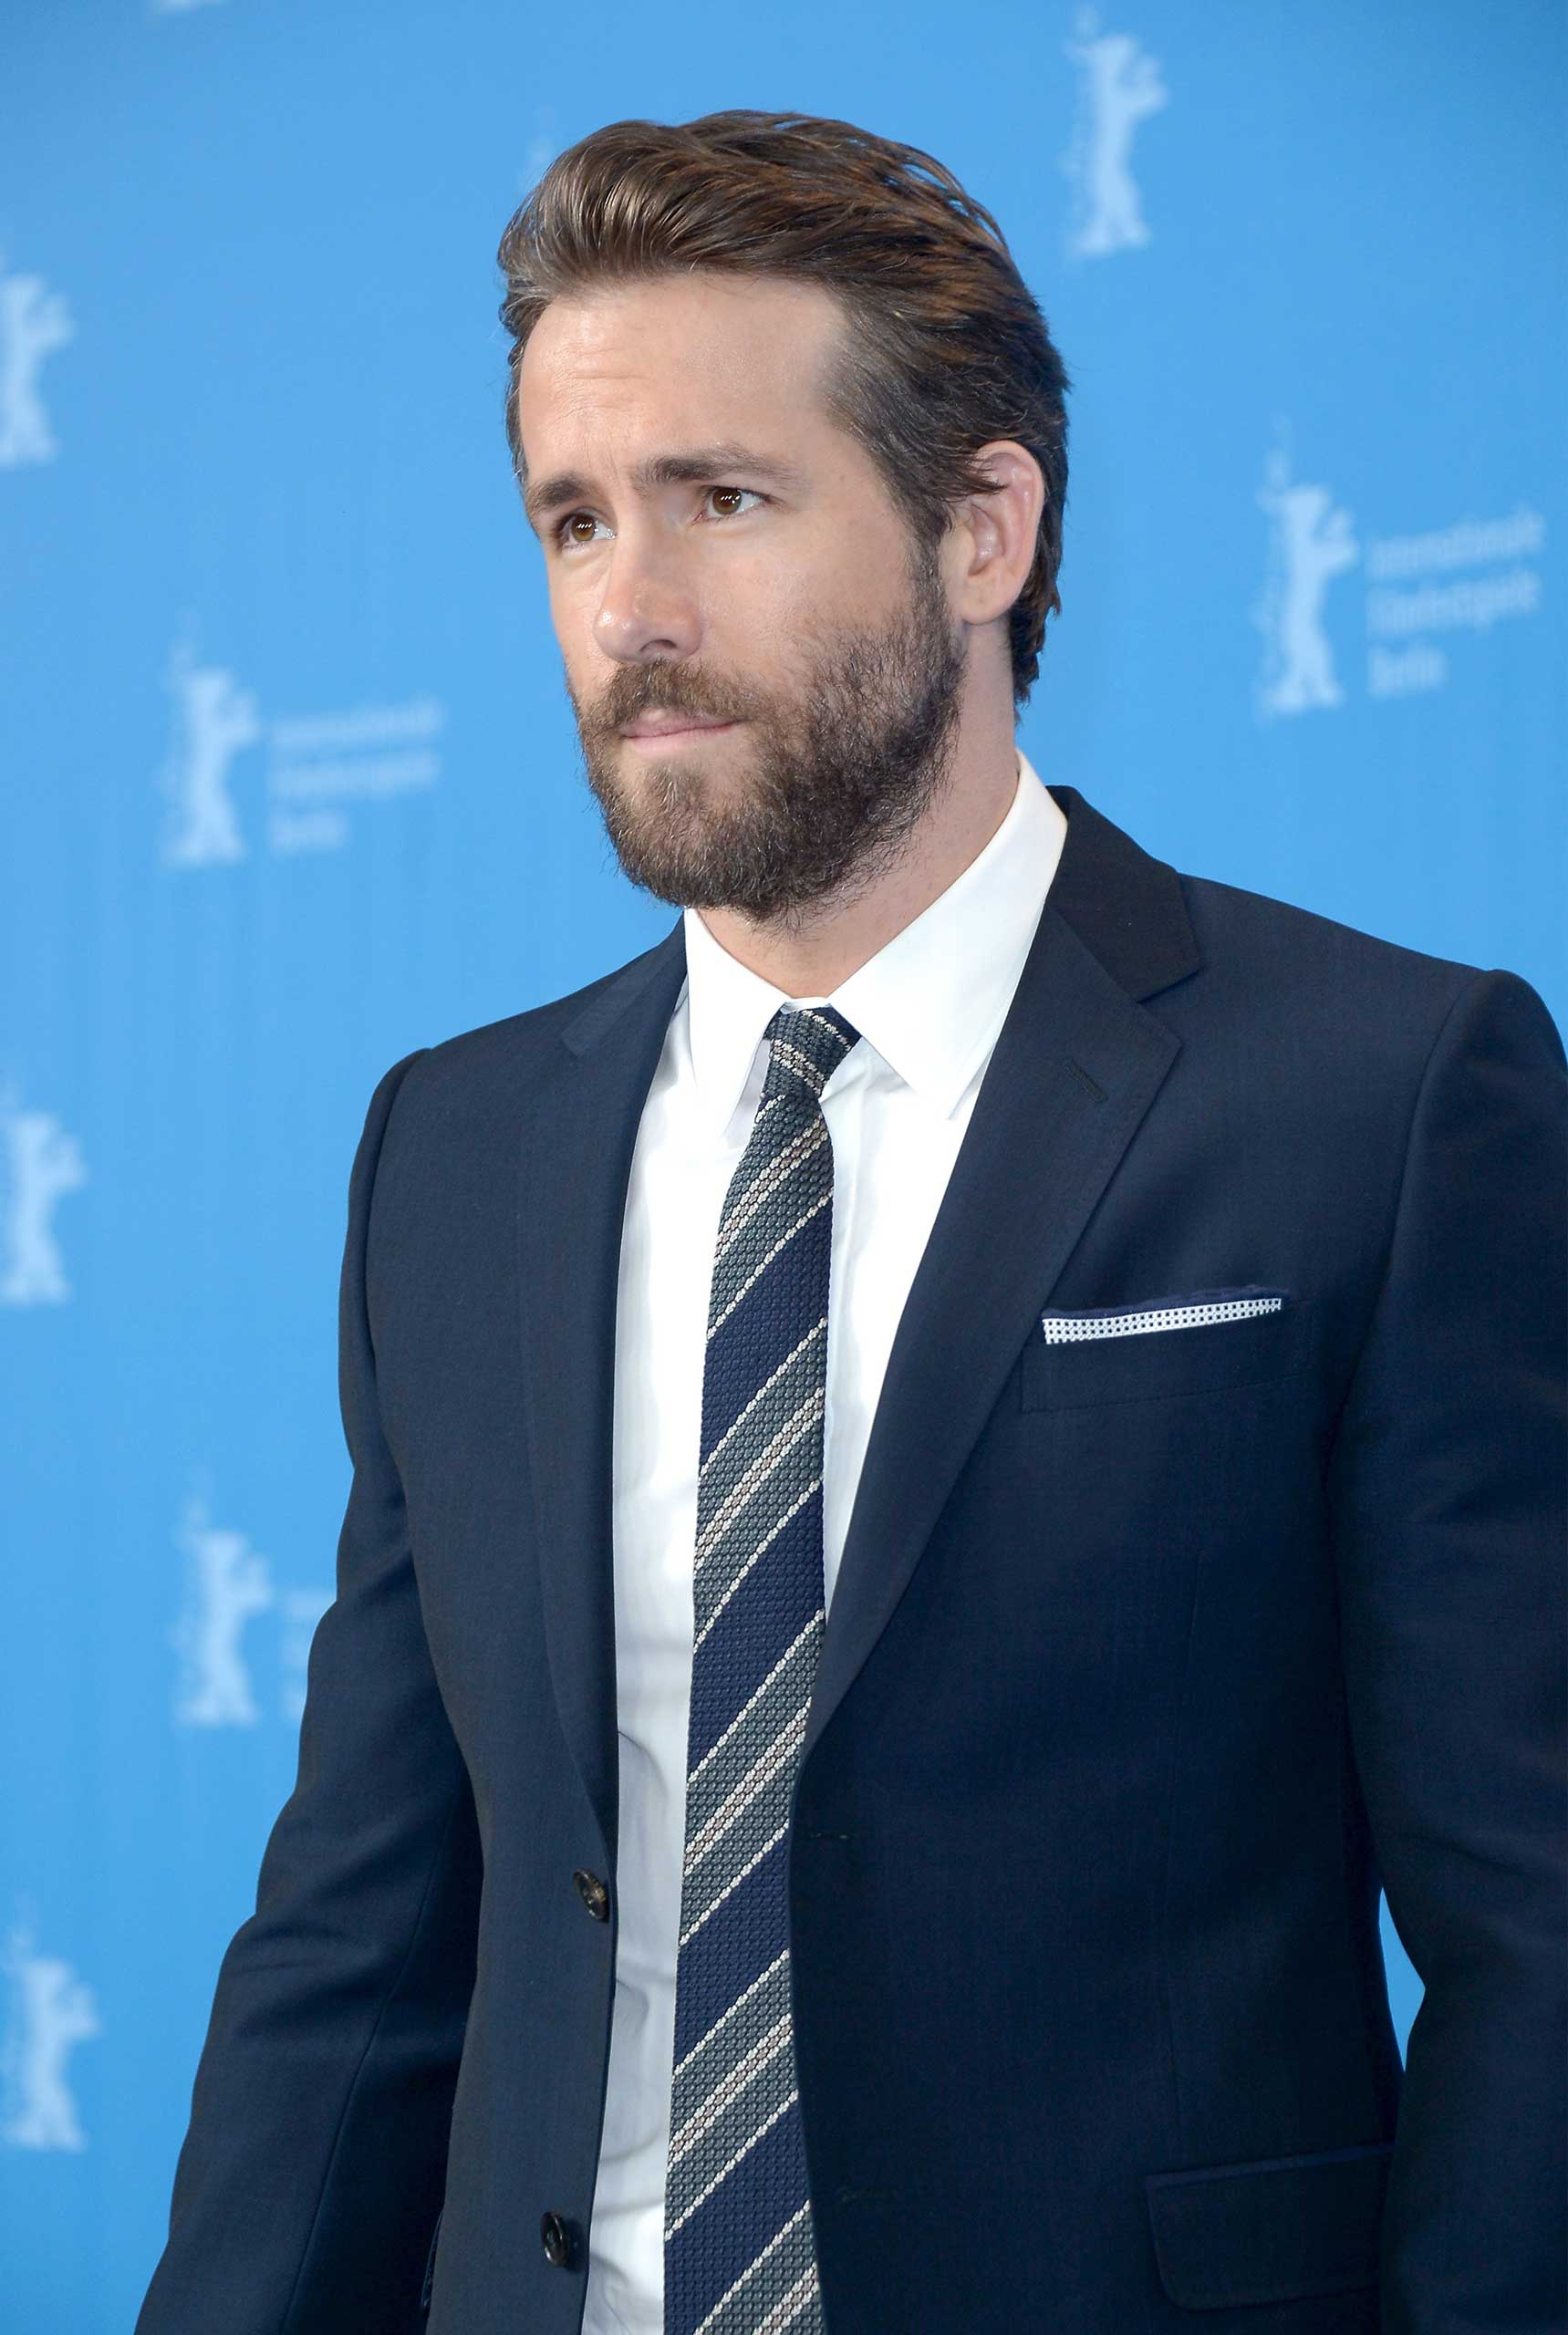 Ryan Reynolds attends the 'Woman in Gold' press conference during the 65th Berlinale International Film Festival at Grand Hyatt Hotel in Berlin on Feb. 9, 2015.